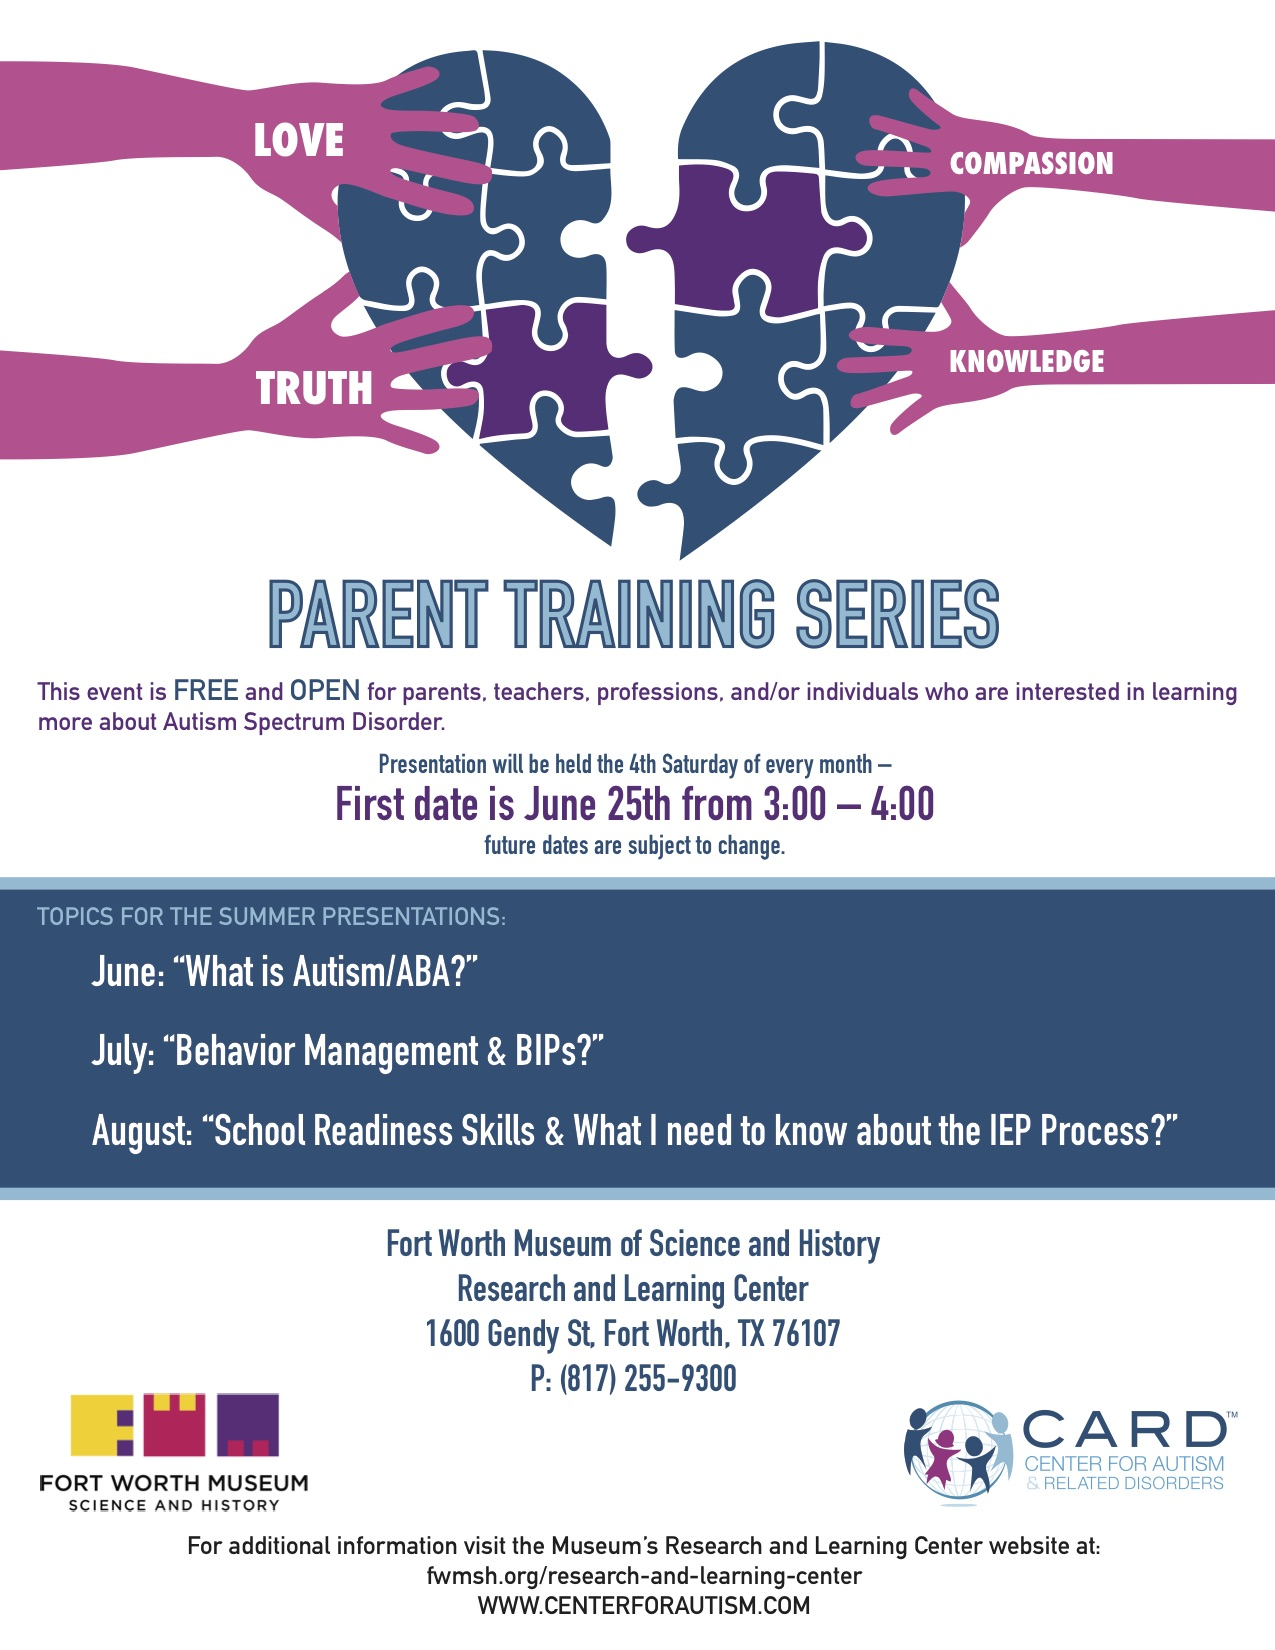 Center for Autism and Related Disorders Presents Parent Training